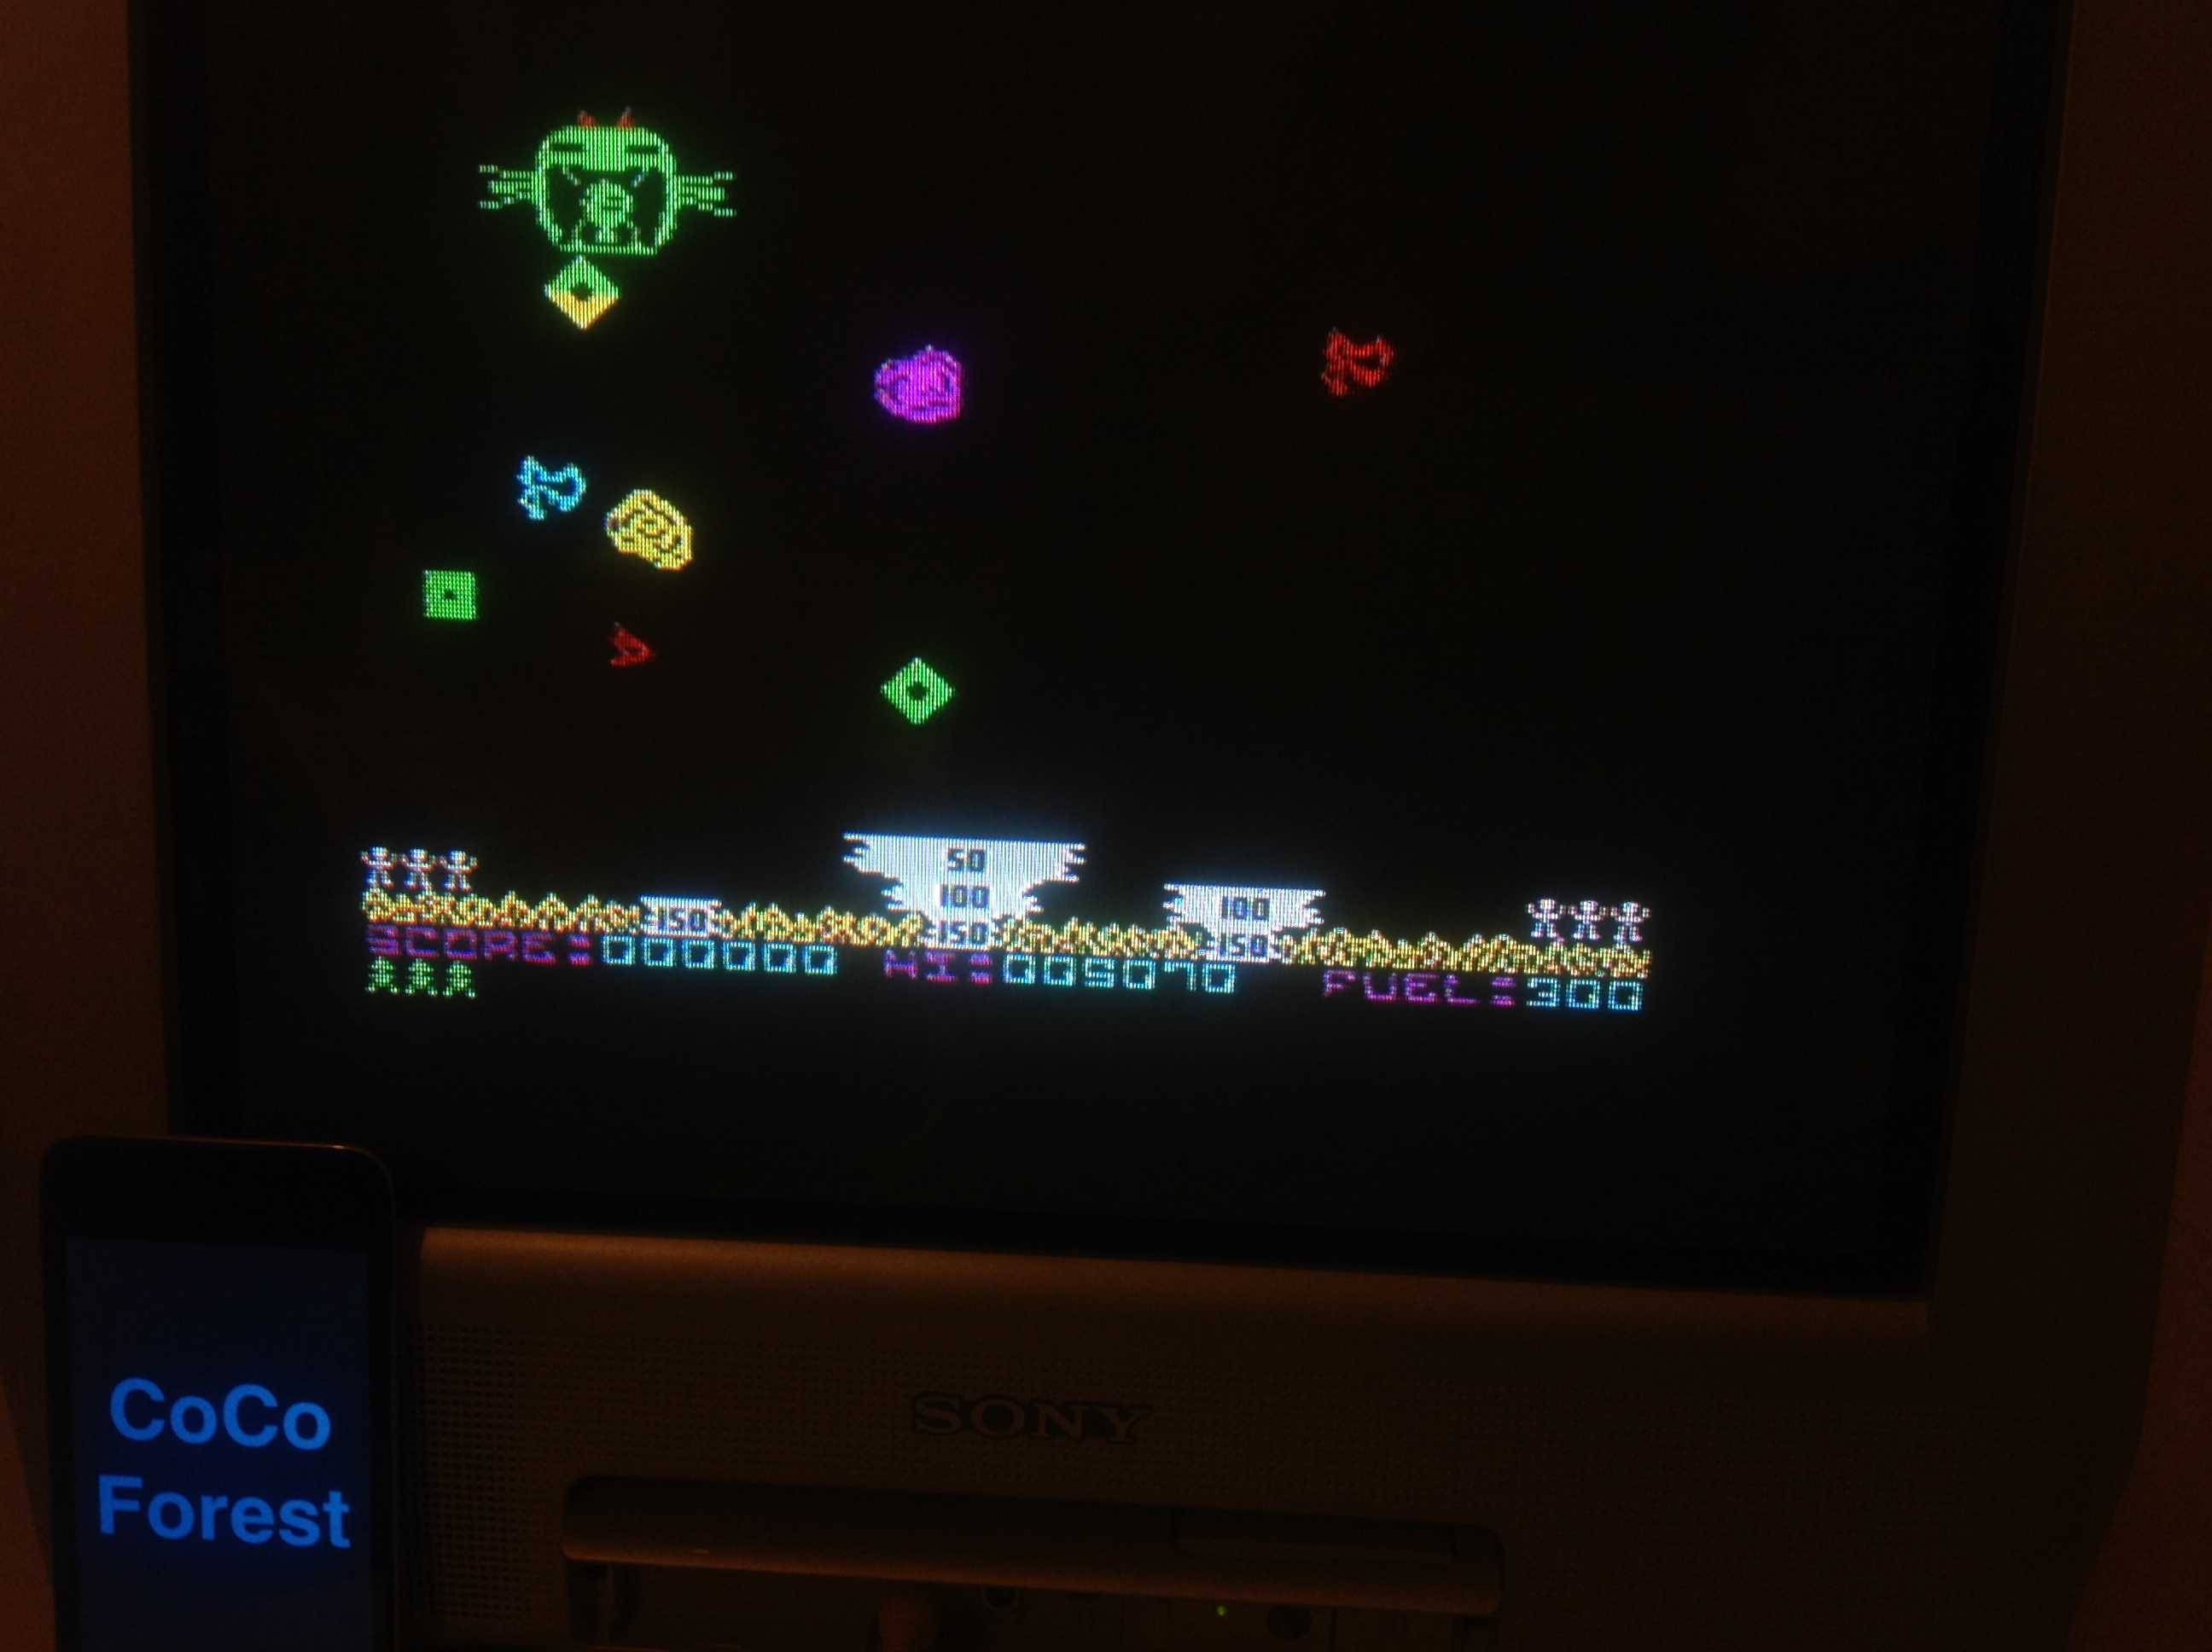 CoCoForest: SOS [Visions Software] (ZX Spectrum) 5,070 points on 2016-01-12 15:10:54